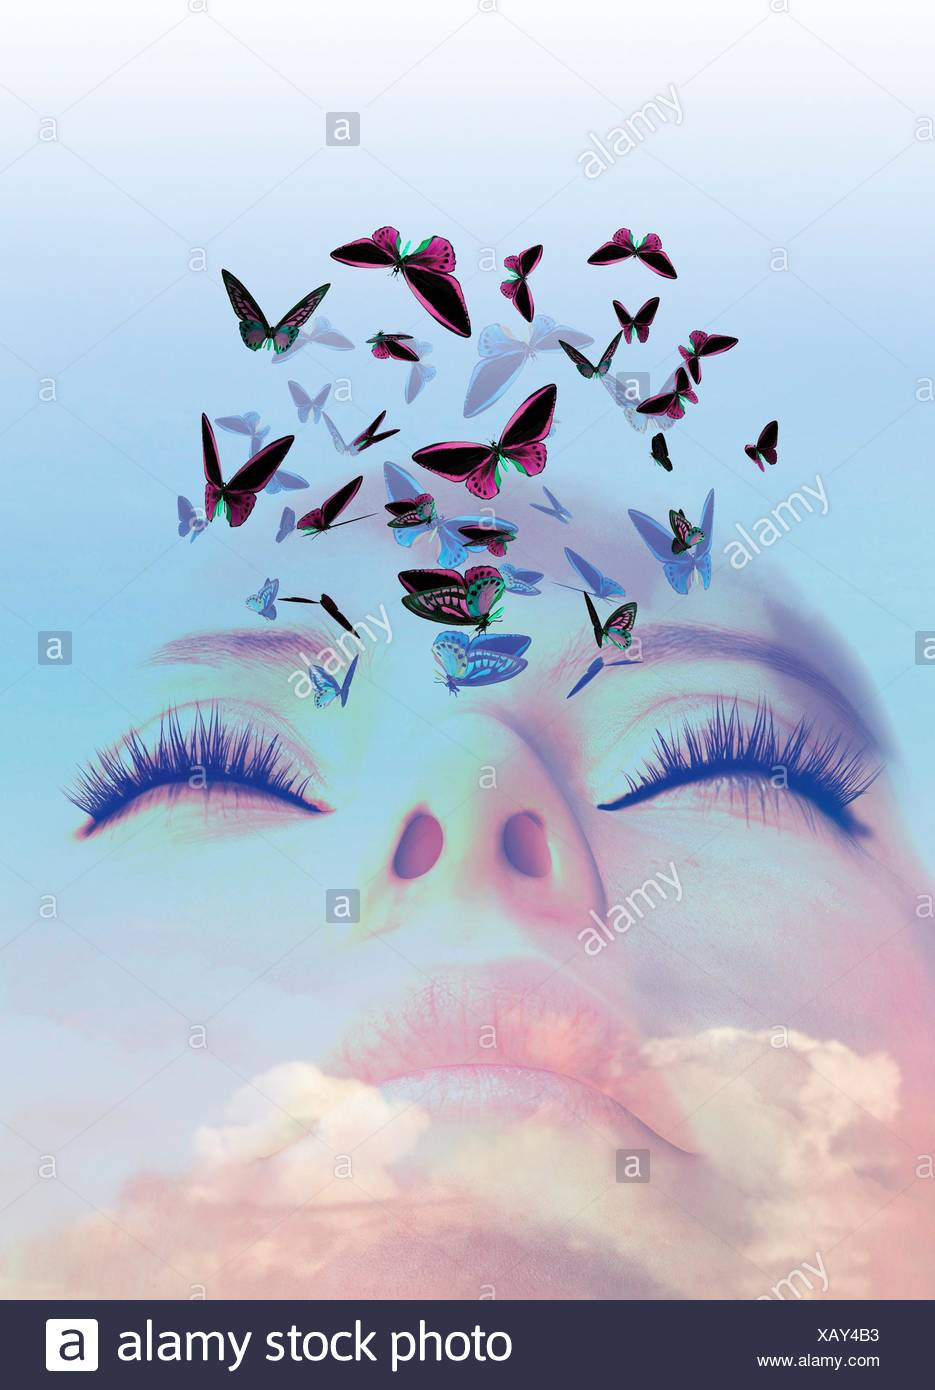 Sleeping woman dreaming of butterflies, illustration. - Stock Image